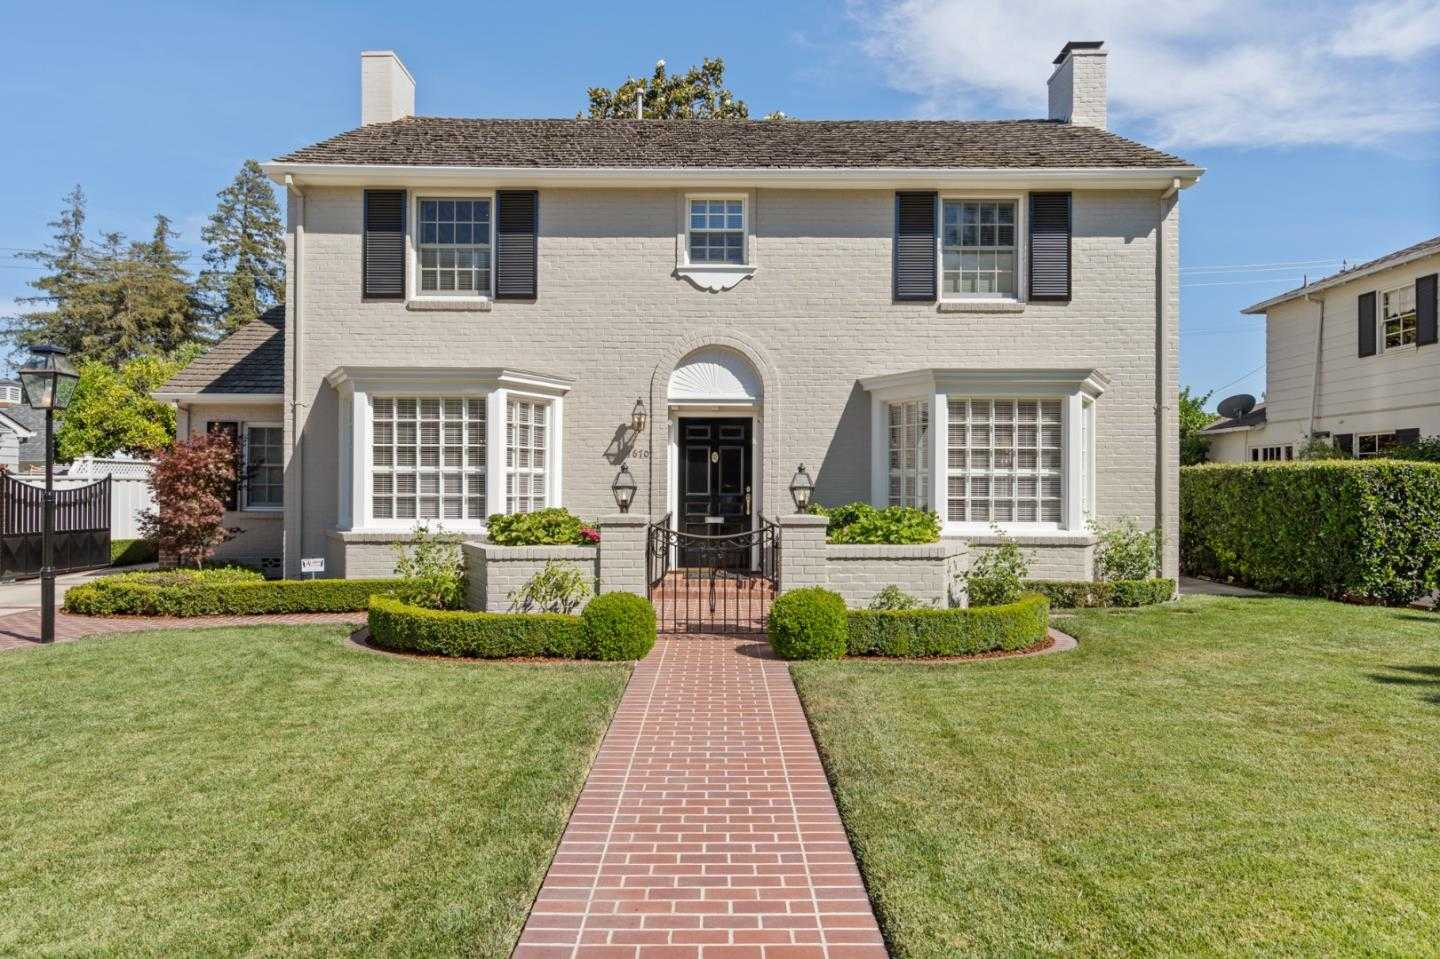 $3,495,000 - 4Br/4Ba -  for Sale in San Jose